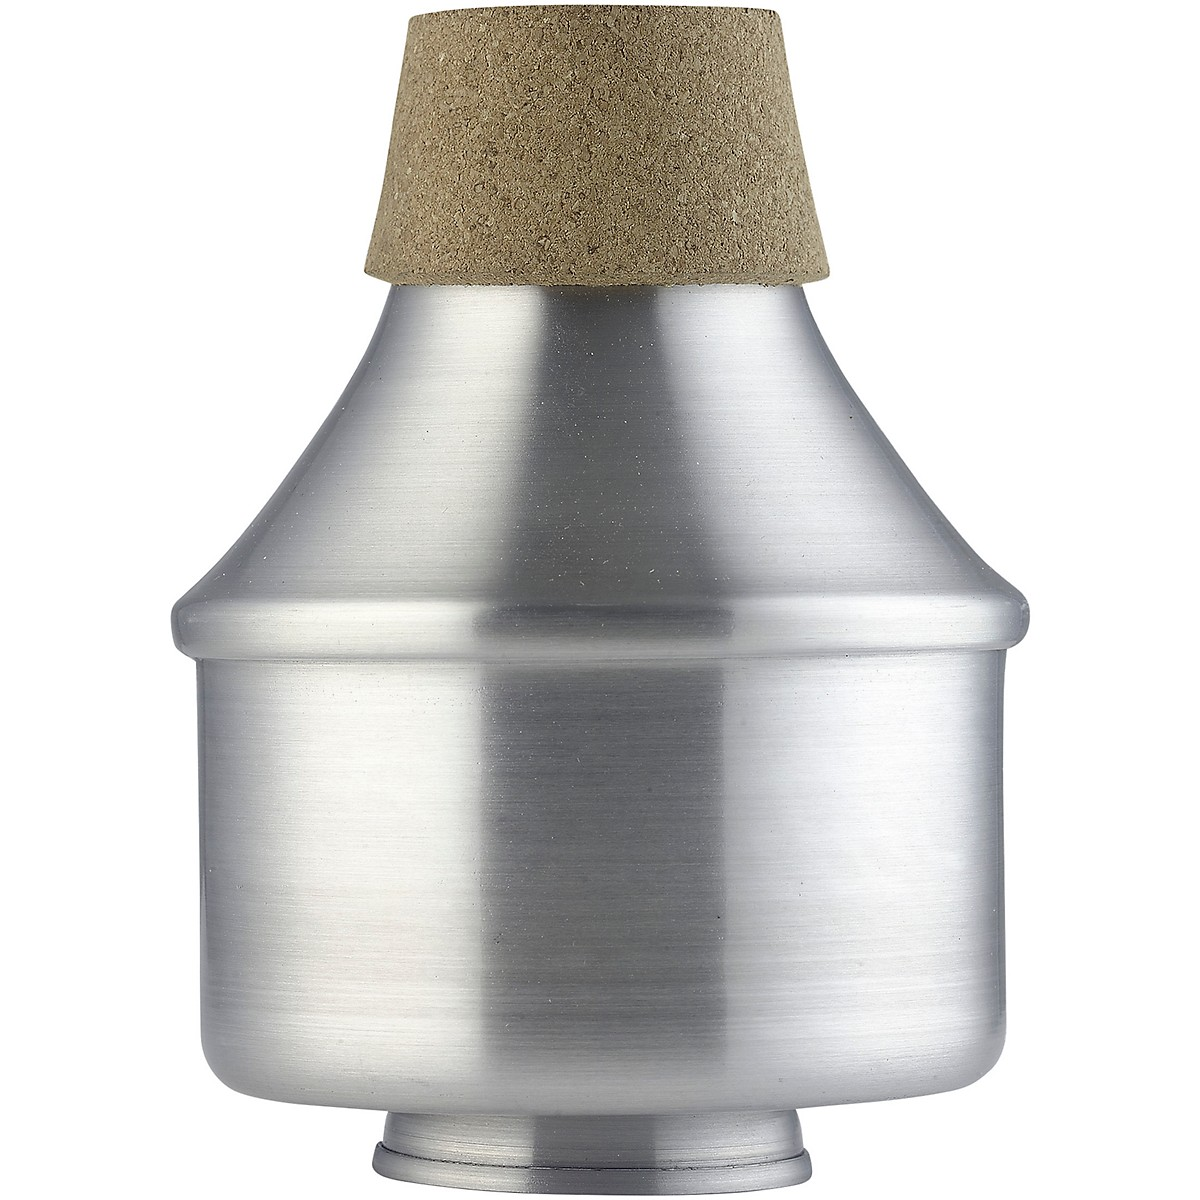 Stagg Aluminum Wah Wah Mute for Trumpet